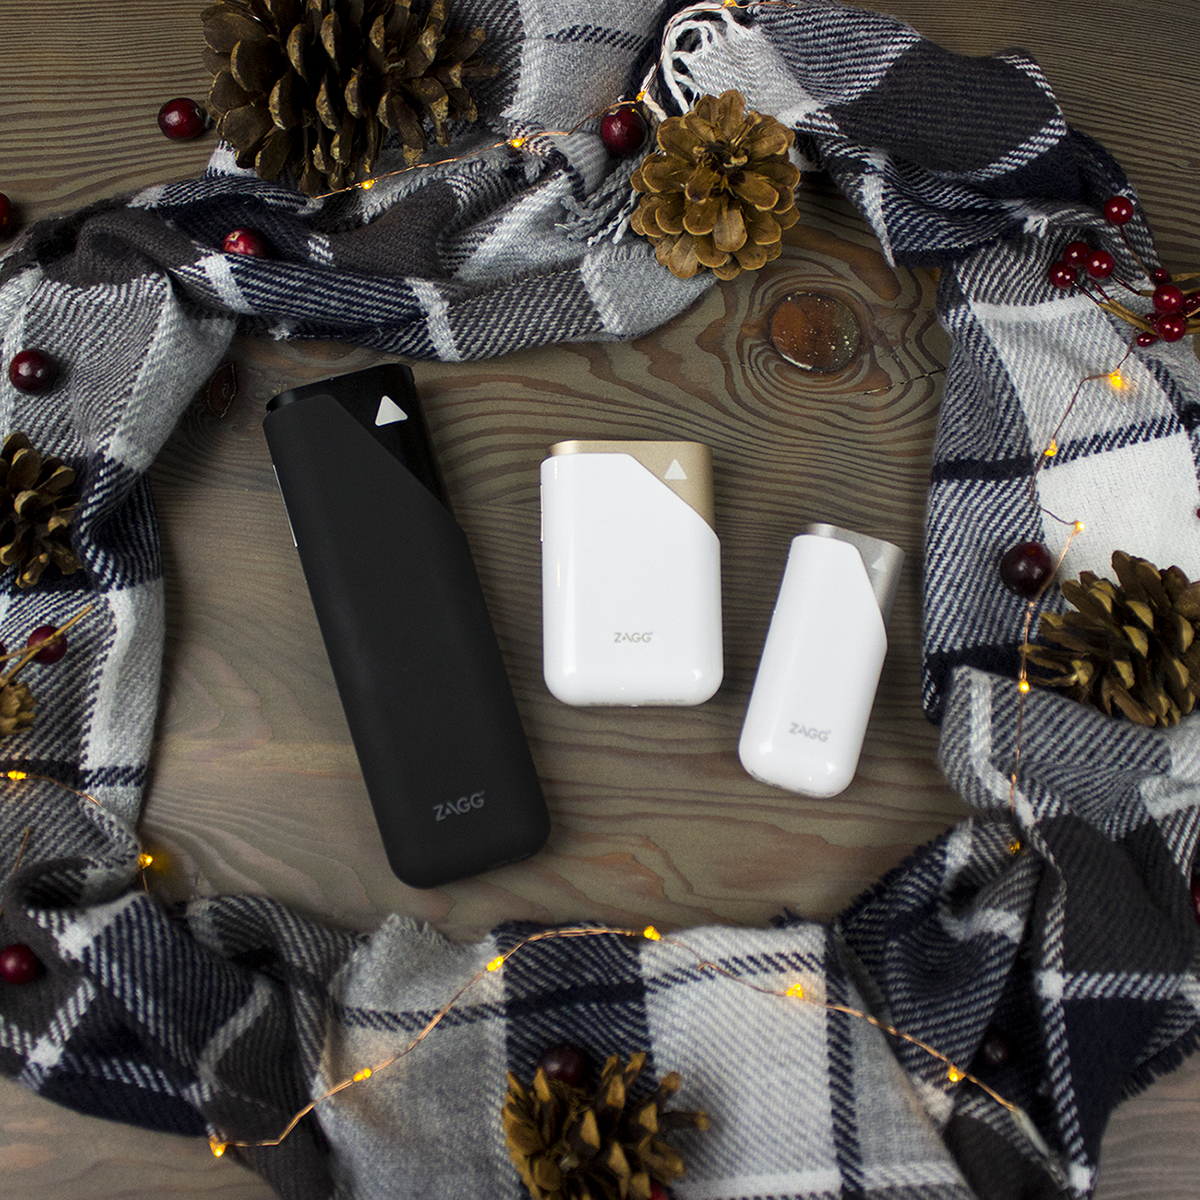 TD's and tailgates – because if it doesn't make it to Instagram, did it ever happen?  Bundle up and power up with #ZAGG portable amps!